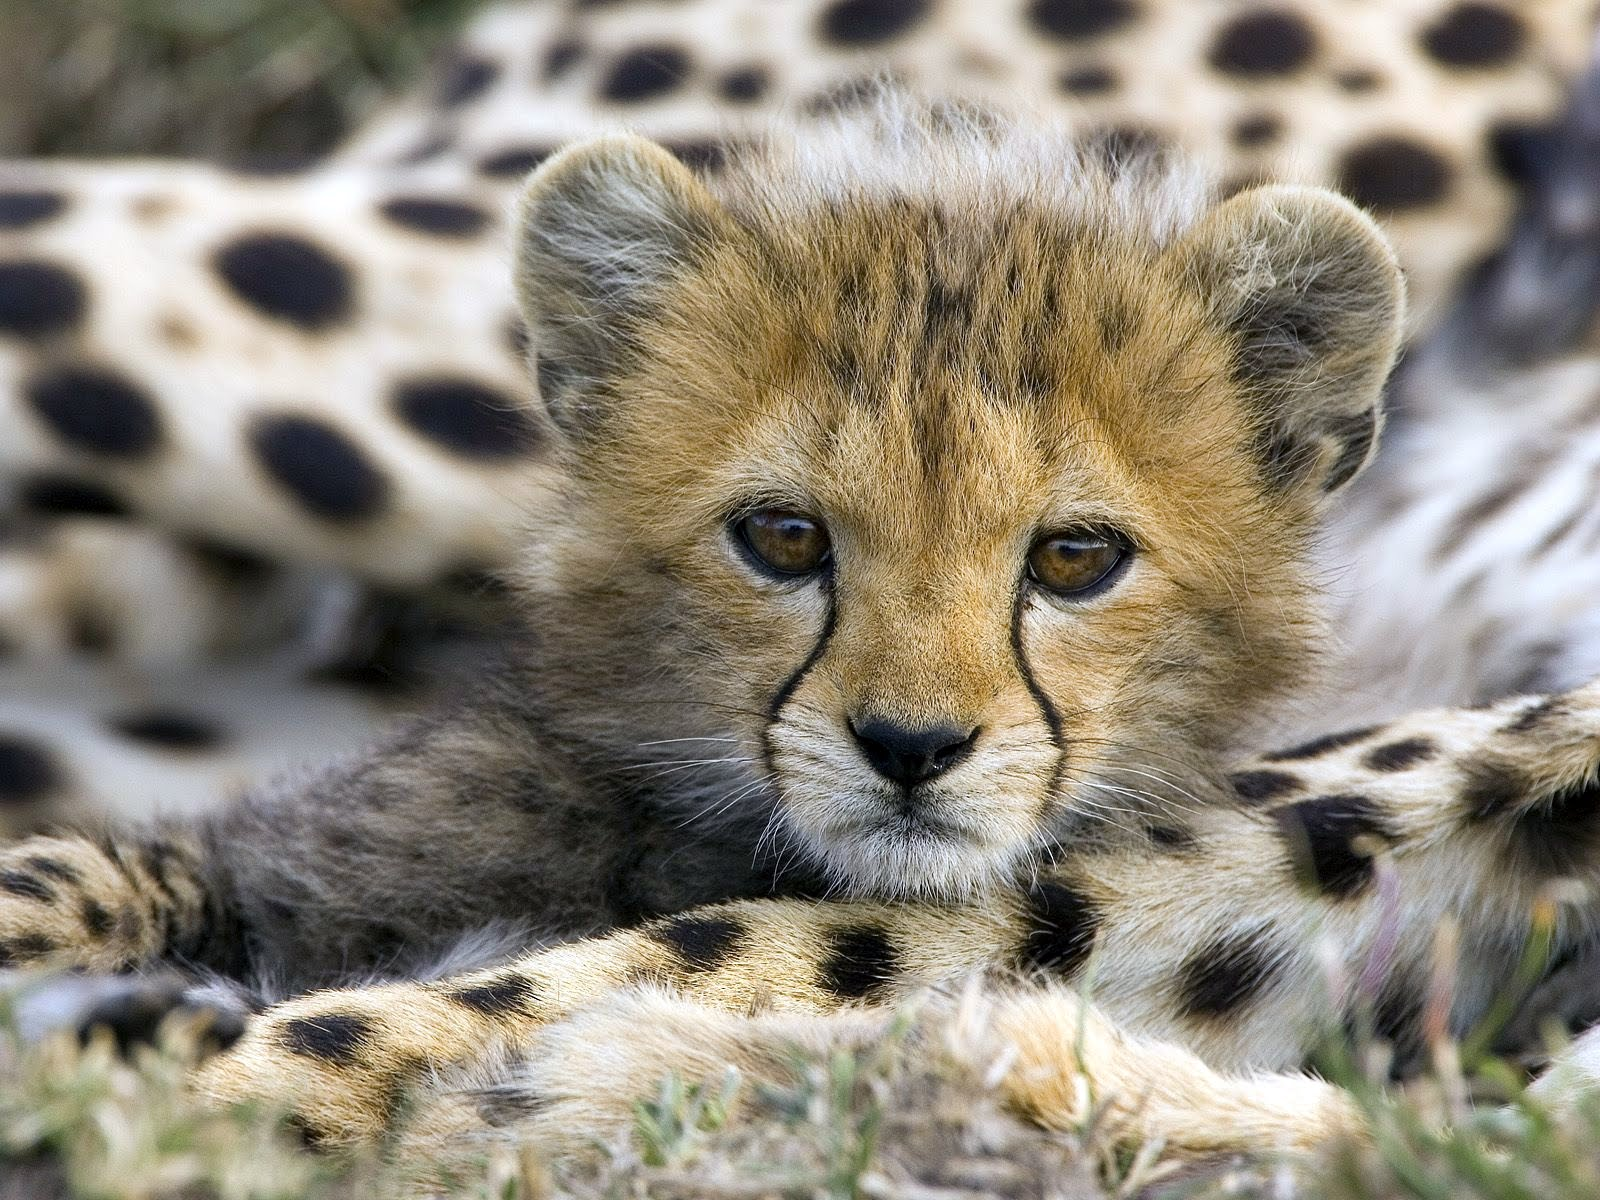 pictures of cute baby wild animals on animal picture society